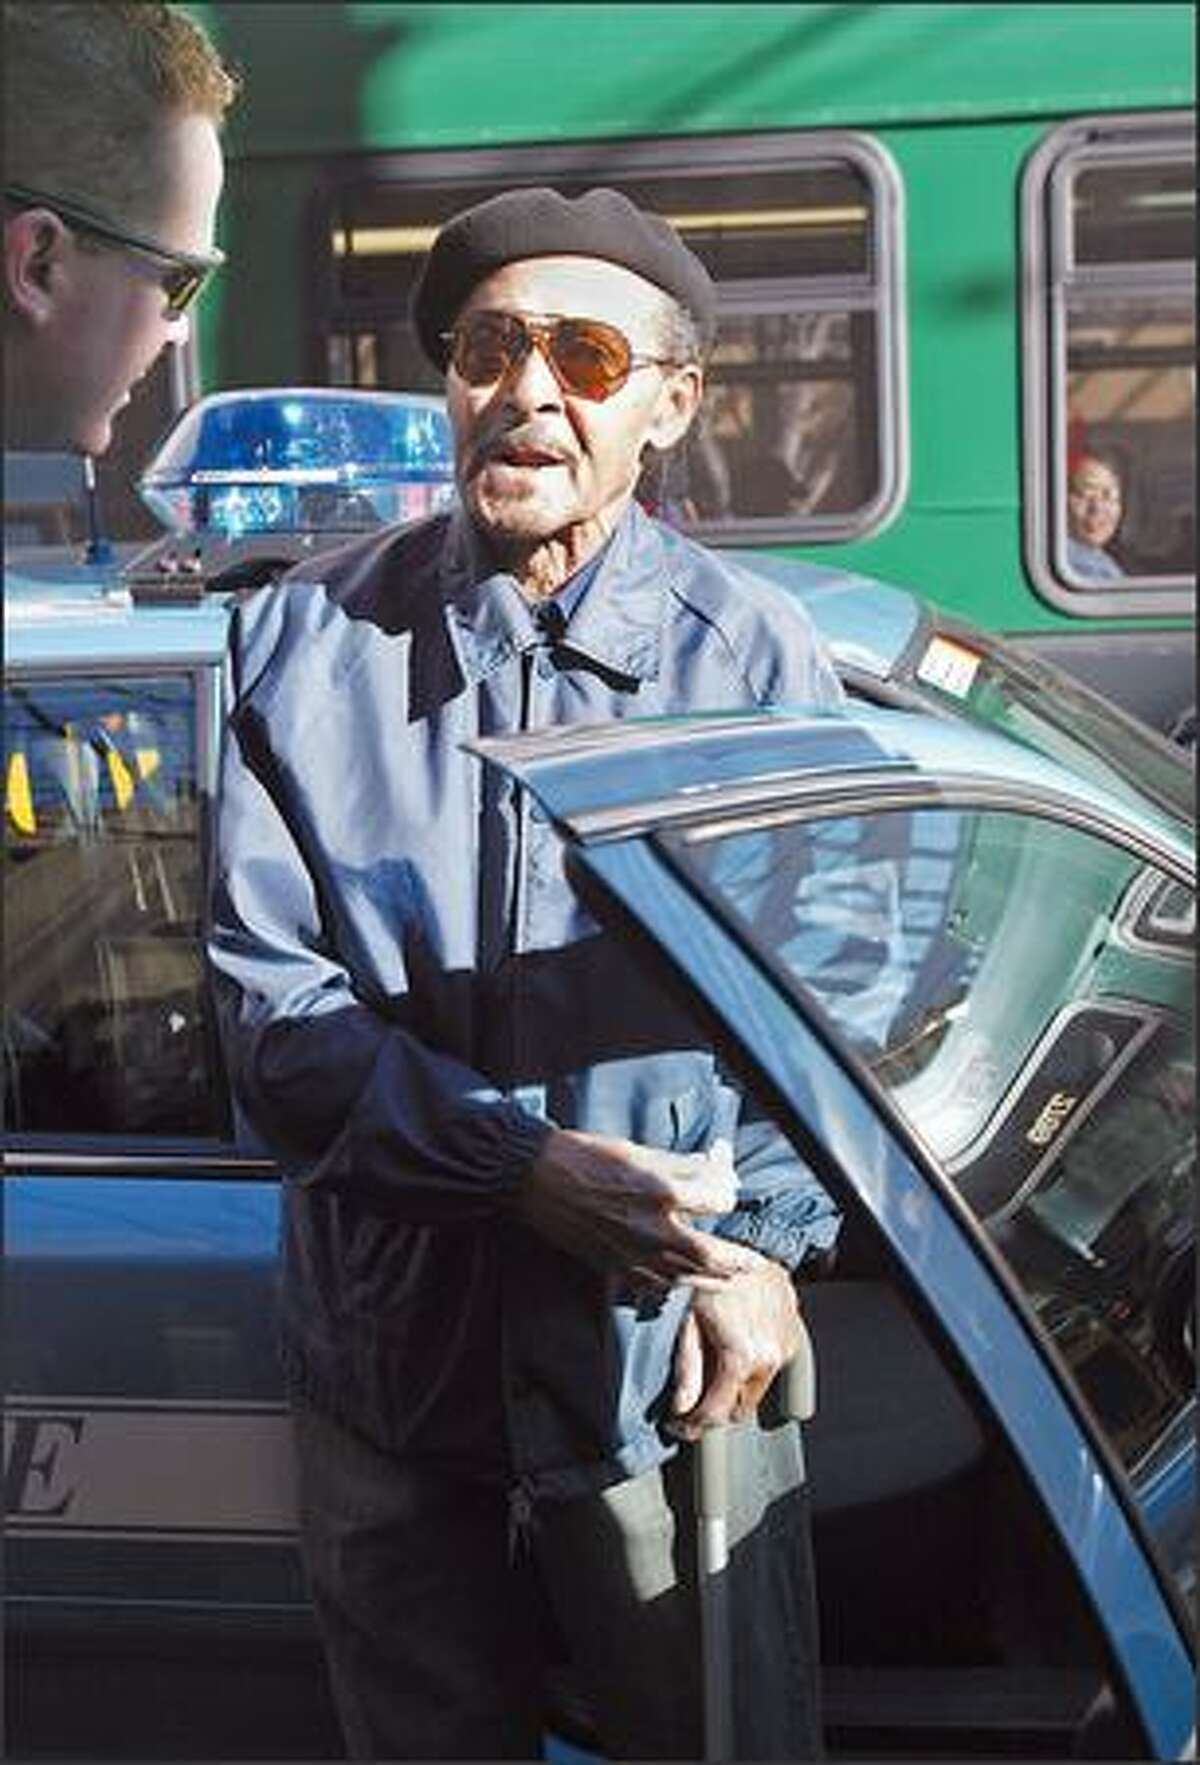 Gus Jones and his cane caught the attention of several members of the Seattle Police Officers Guild last week when the 82-year-old Seattle man used his walking stick to beat back a man who allegedly tried to set him on fire.